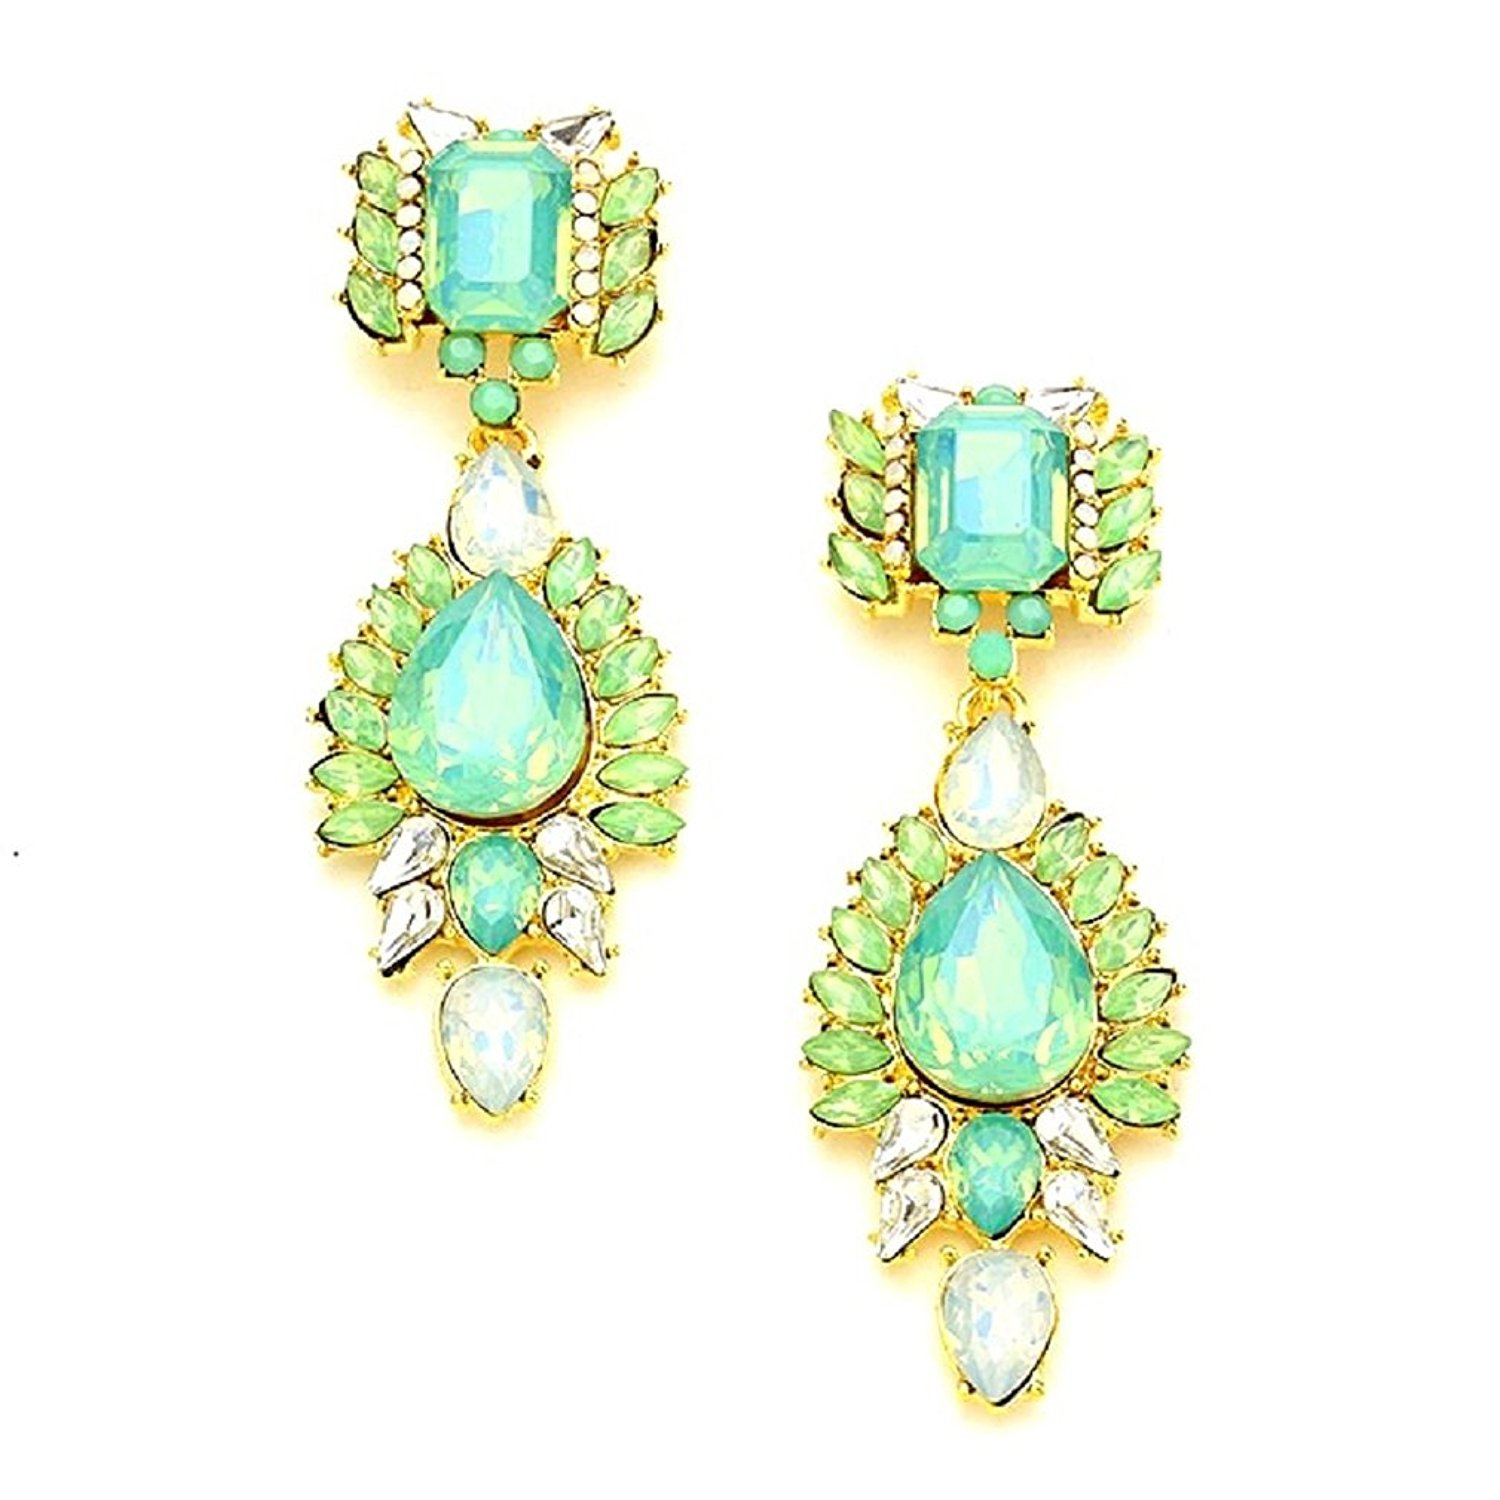 Get Ations Uniklook Jewelry Pop Urban Chic Mint Green Clear Crystal Chandelier Gold Earrings